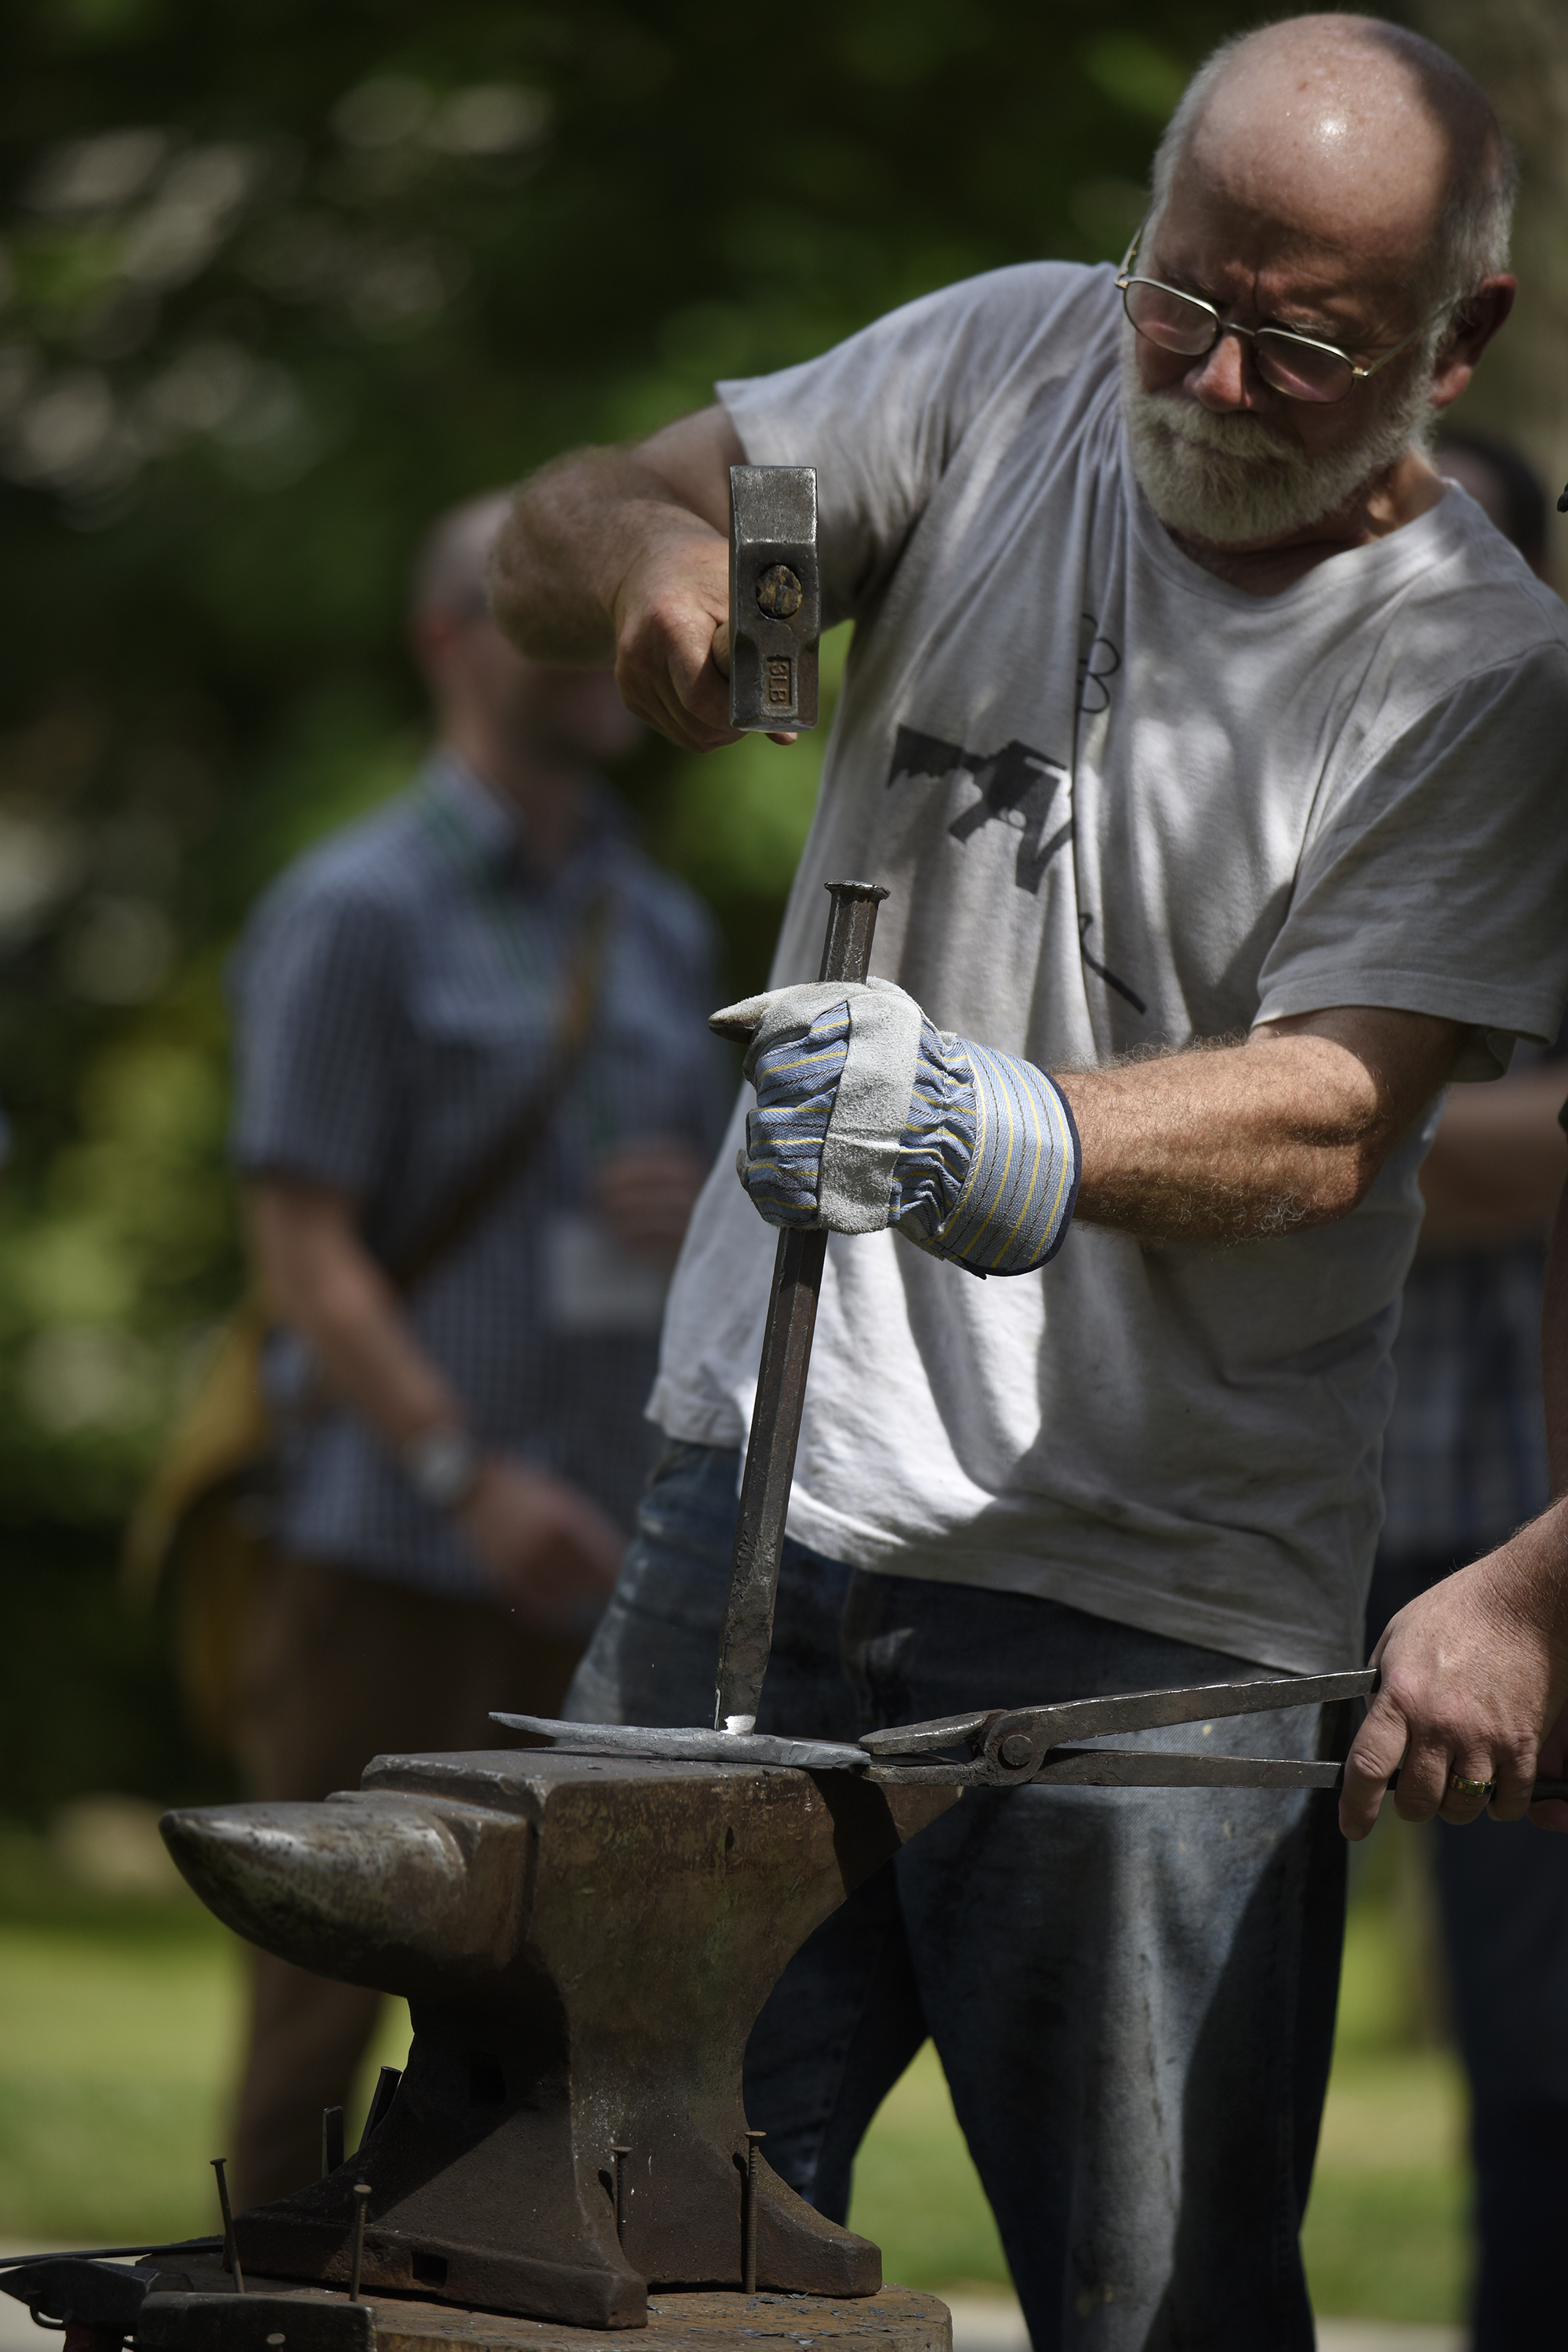 Fred Martin, RAWTools blacksmith, Colorado Springs, CO., works with piece of a gun as he forms a gardening tool during the Thursday session of Central District Conference, Thursday, June 22, 2017, at Bluffton University, in Bluffton, OH. Photograph by J. Tyler Klassen